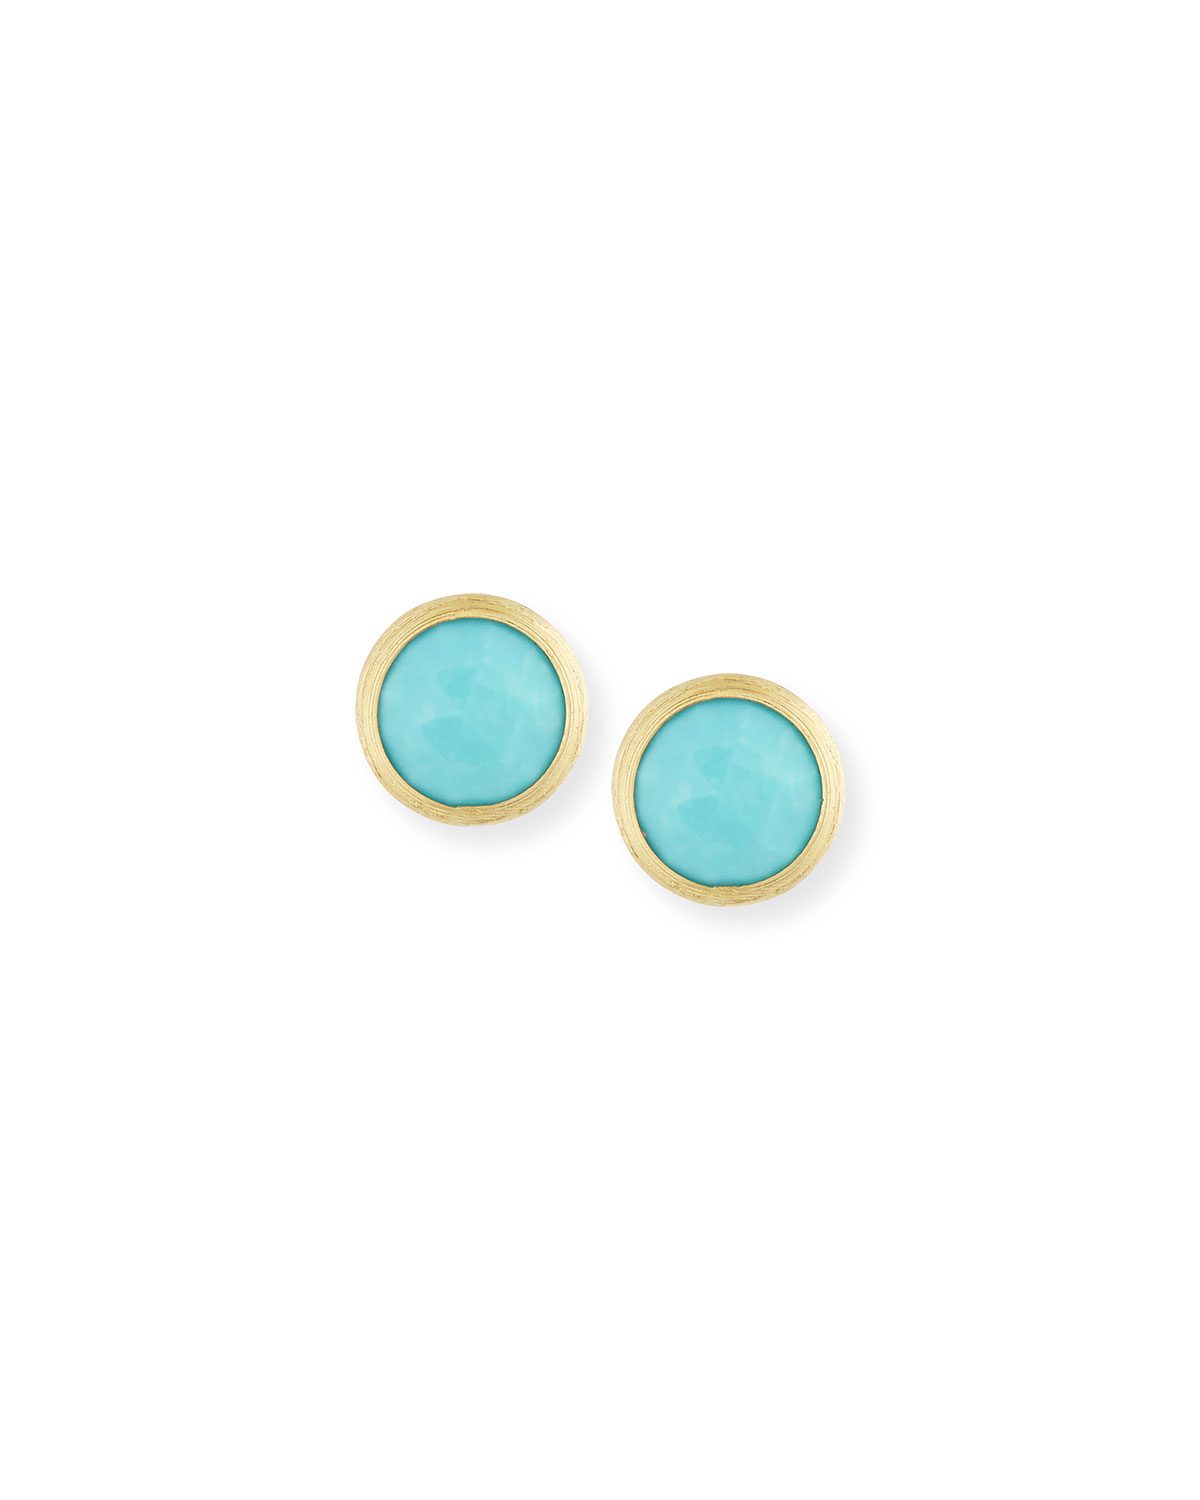 Jaipur Turquoise Stud Earrings